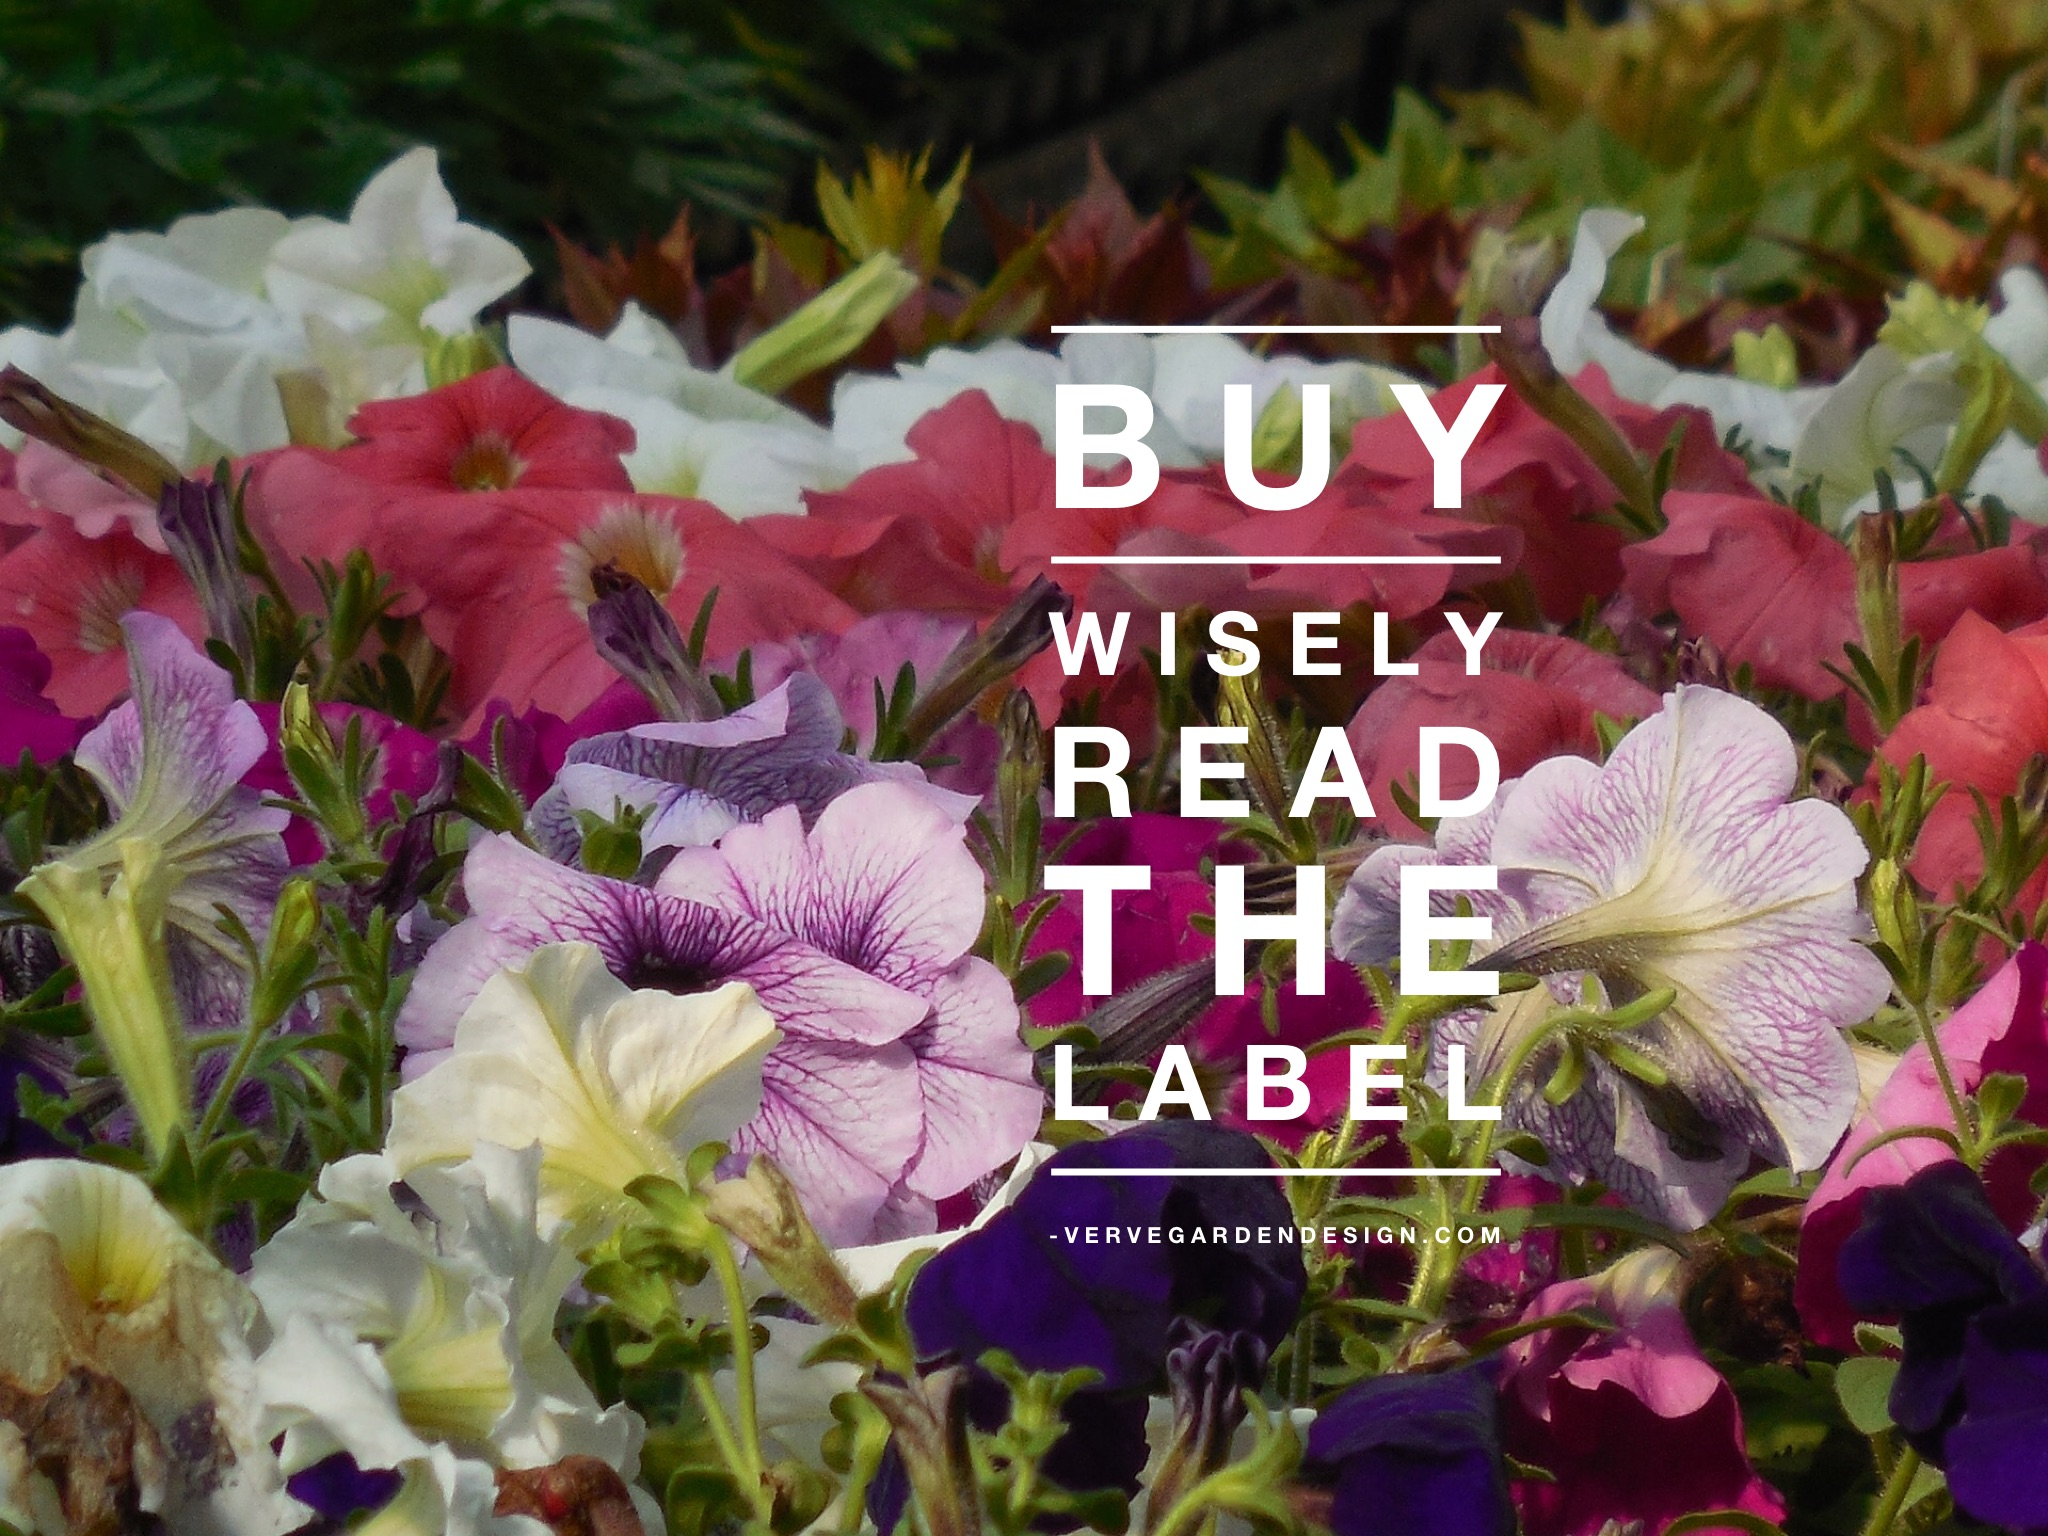 Don't just buy a plant because you like the look: check the label to see if it will thrive in your garden